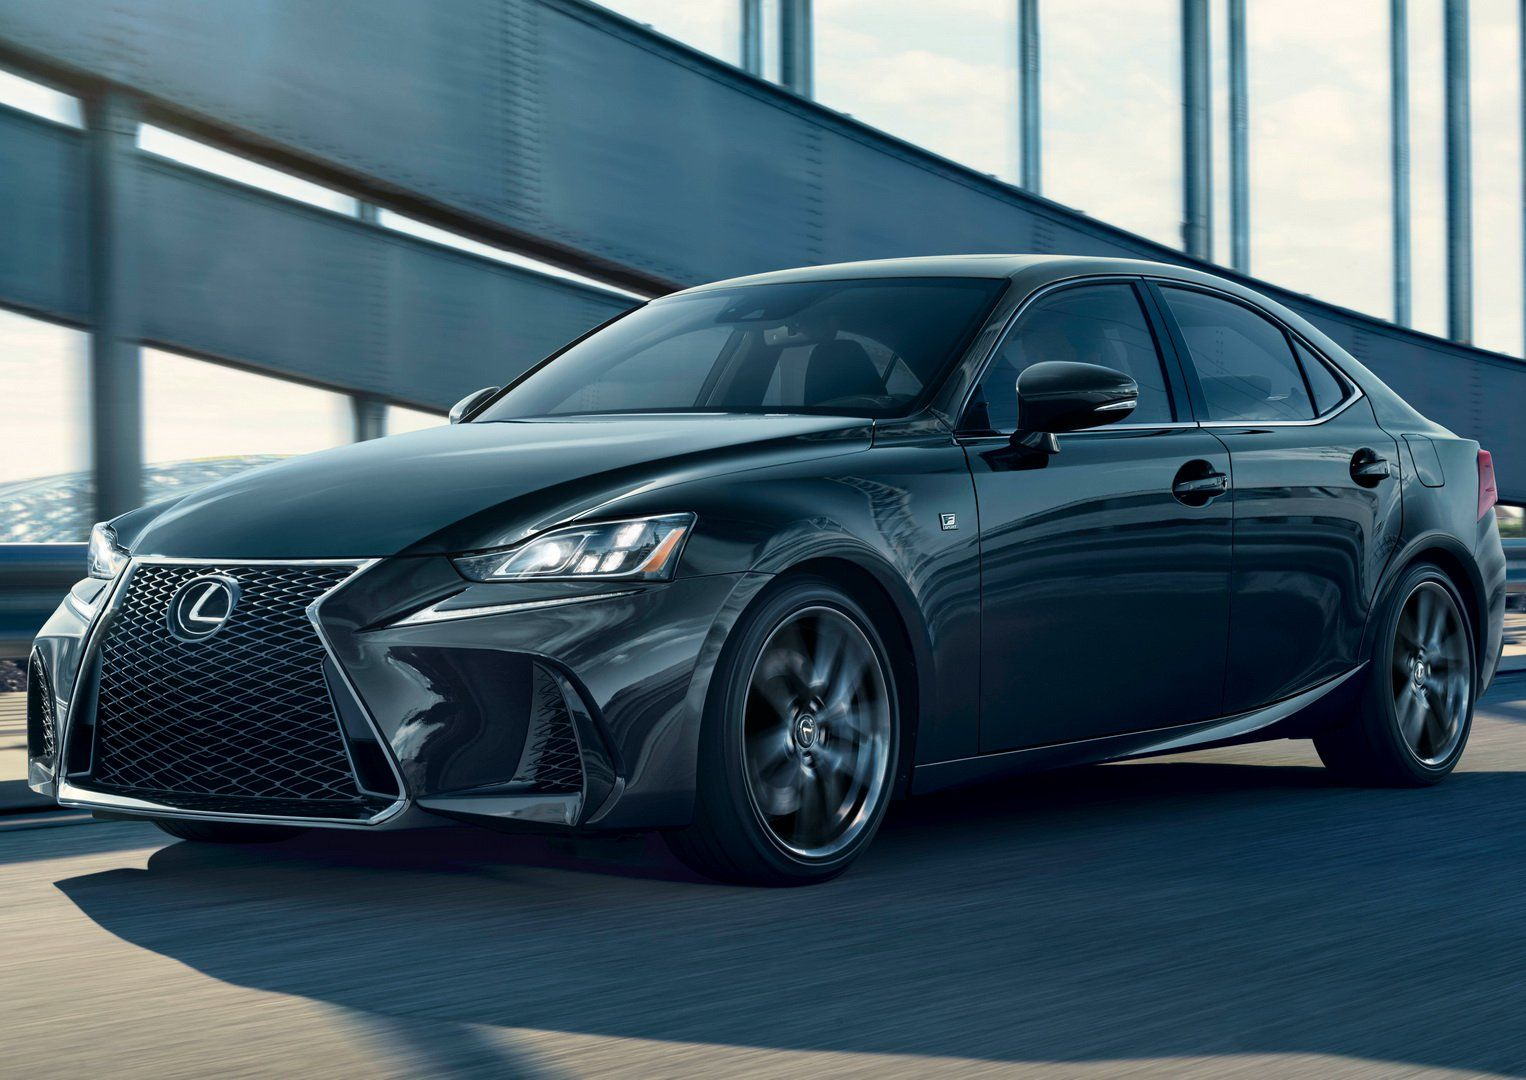 Lexus has introduced the 2019 Lexus IS 300 F Sport Black